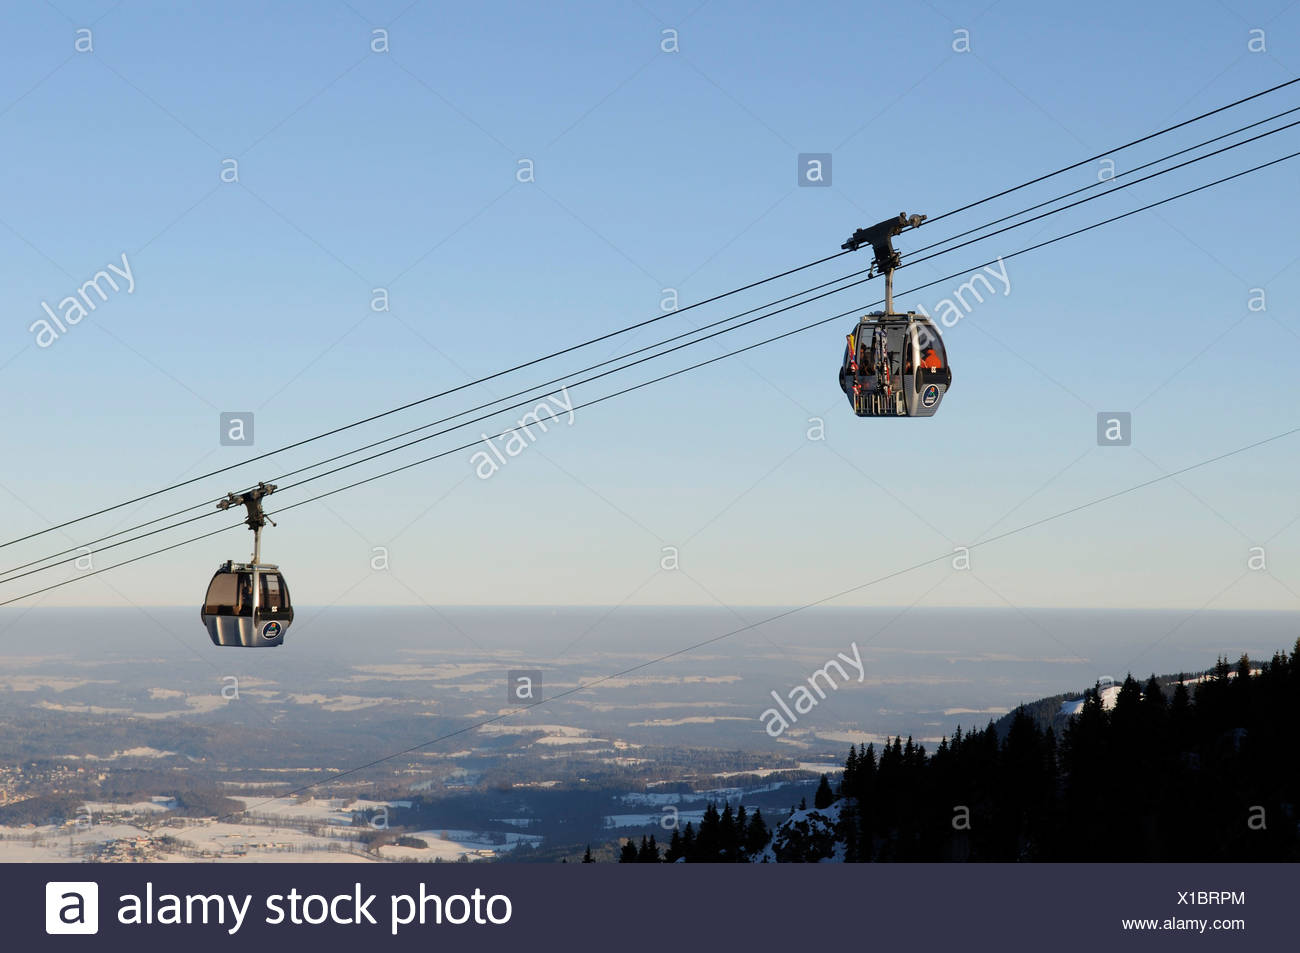 Brauneck cable car, Bayrische Alpen or Bavarian Alps, Bavaria, Germany, Europe - Stock Image